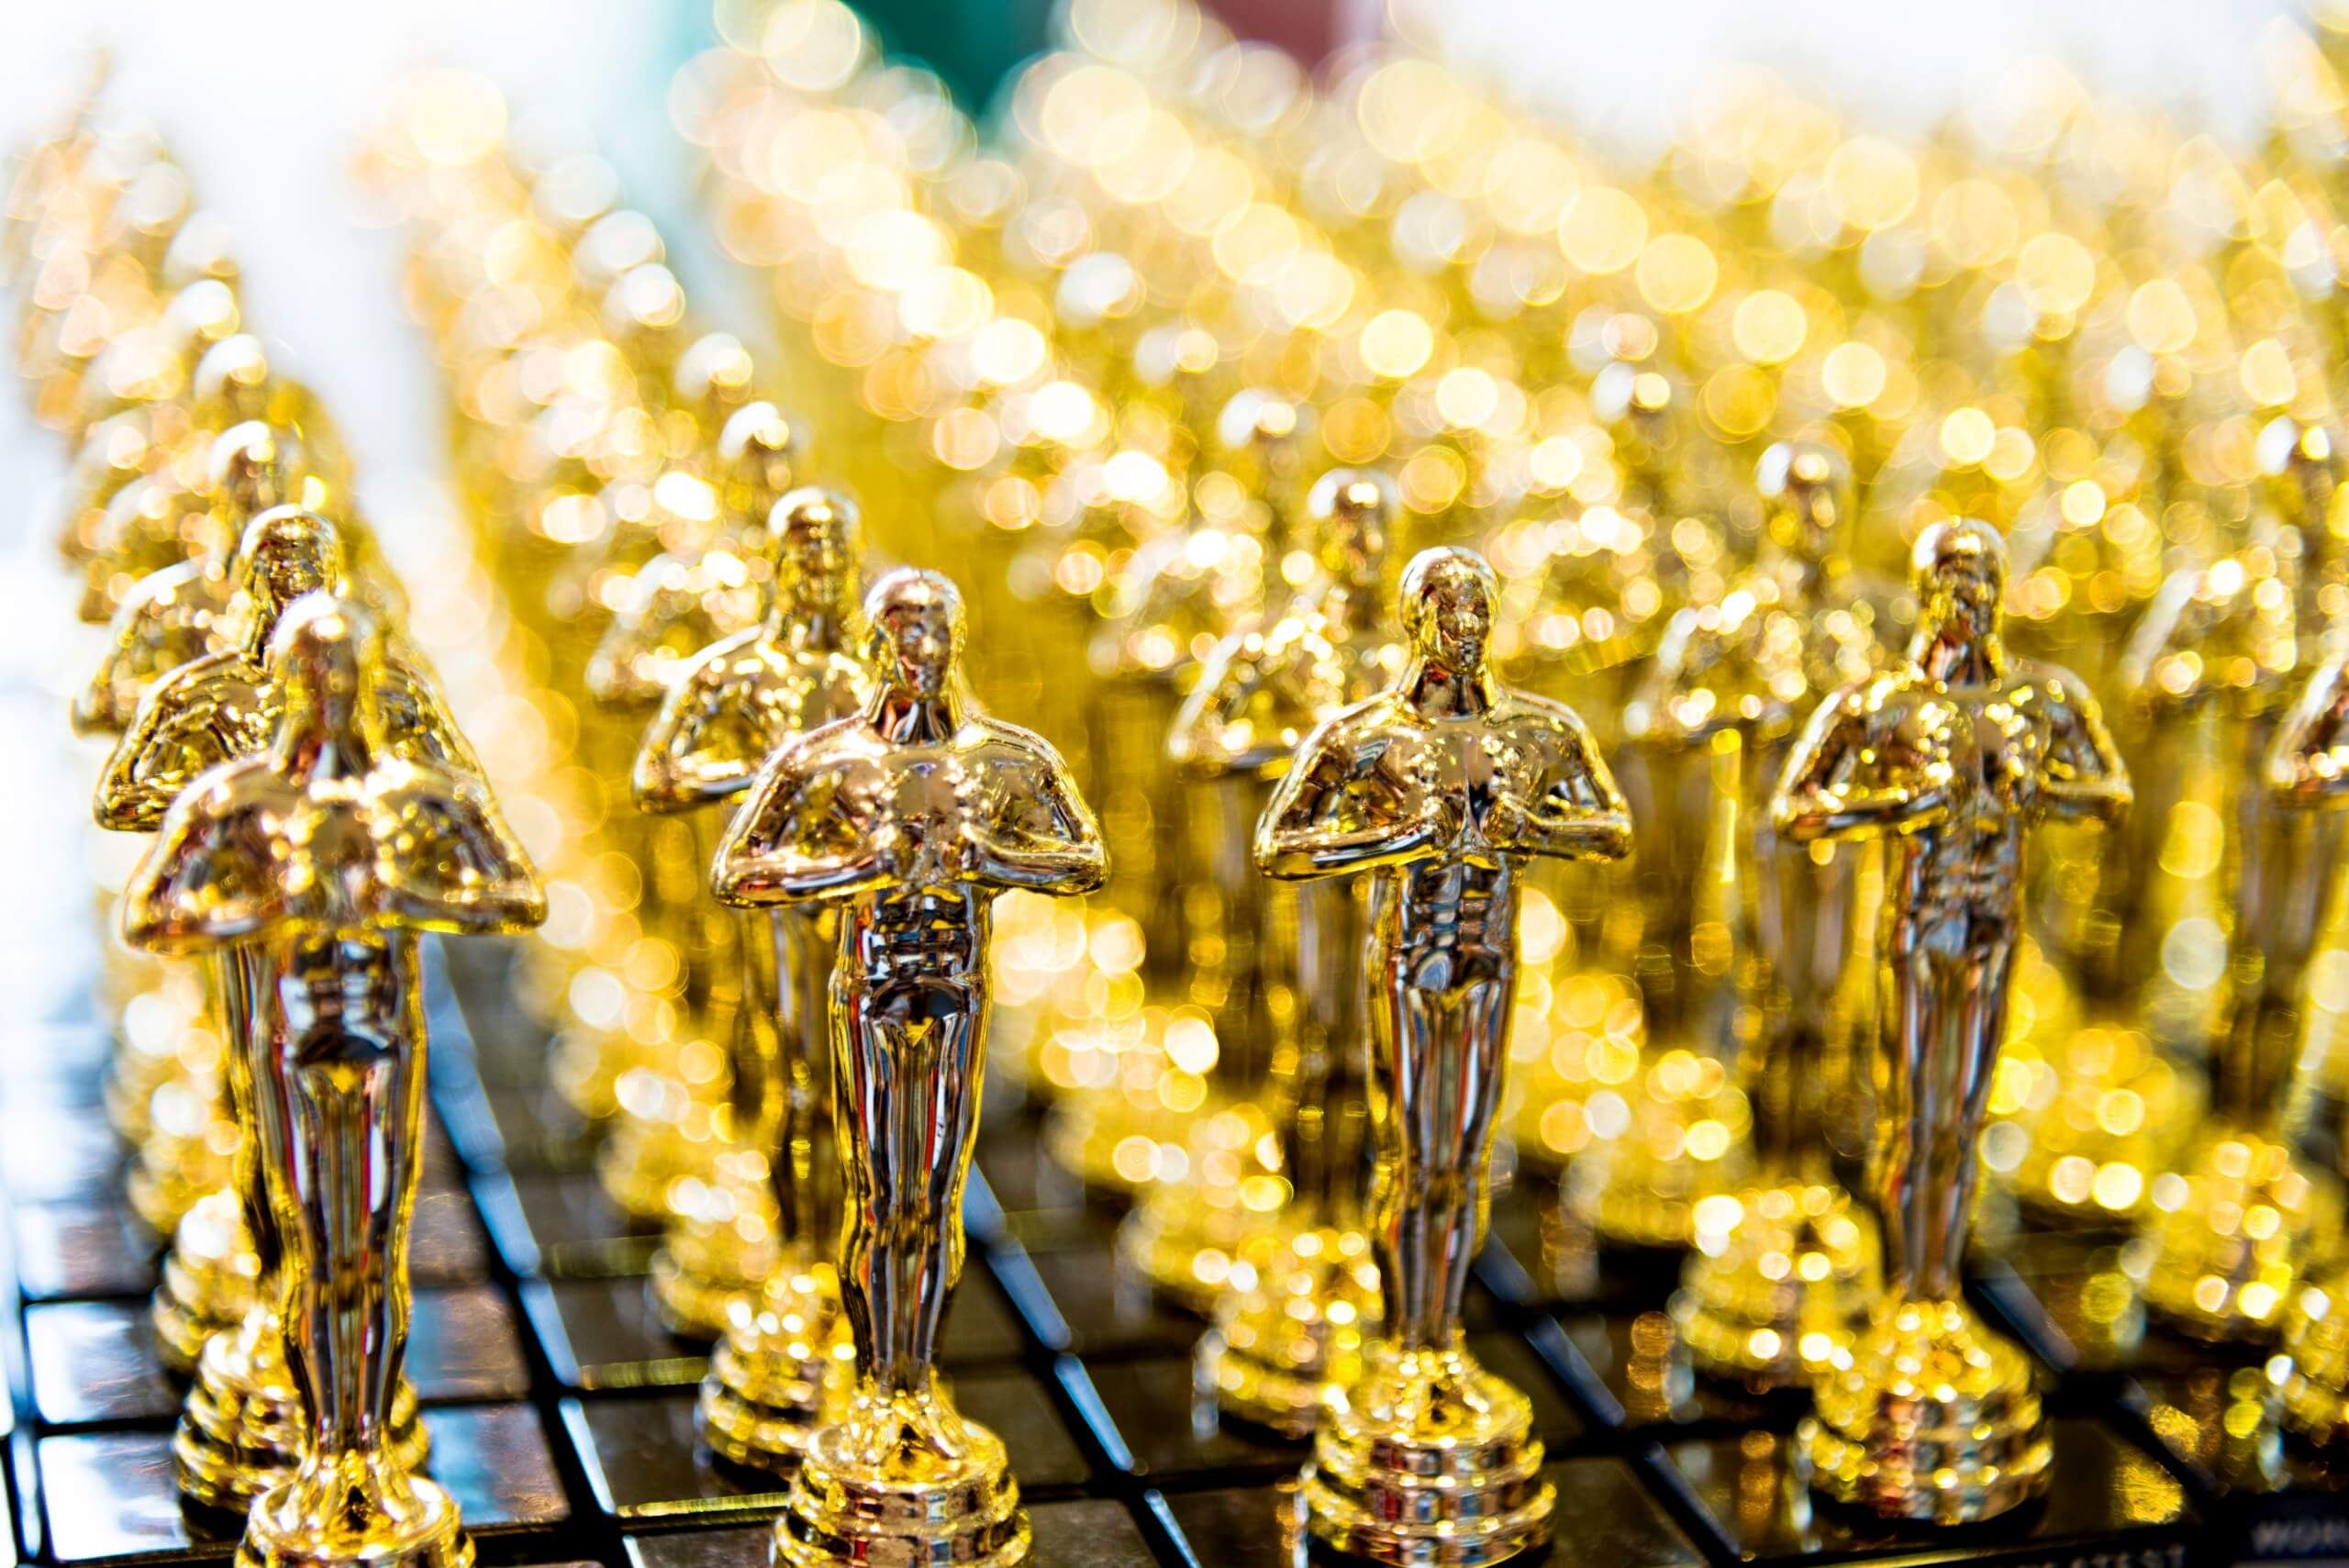 Excluding Netflix and Amazon movies from the Oscars may violate anti